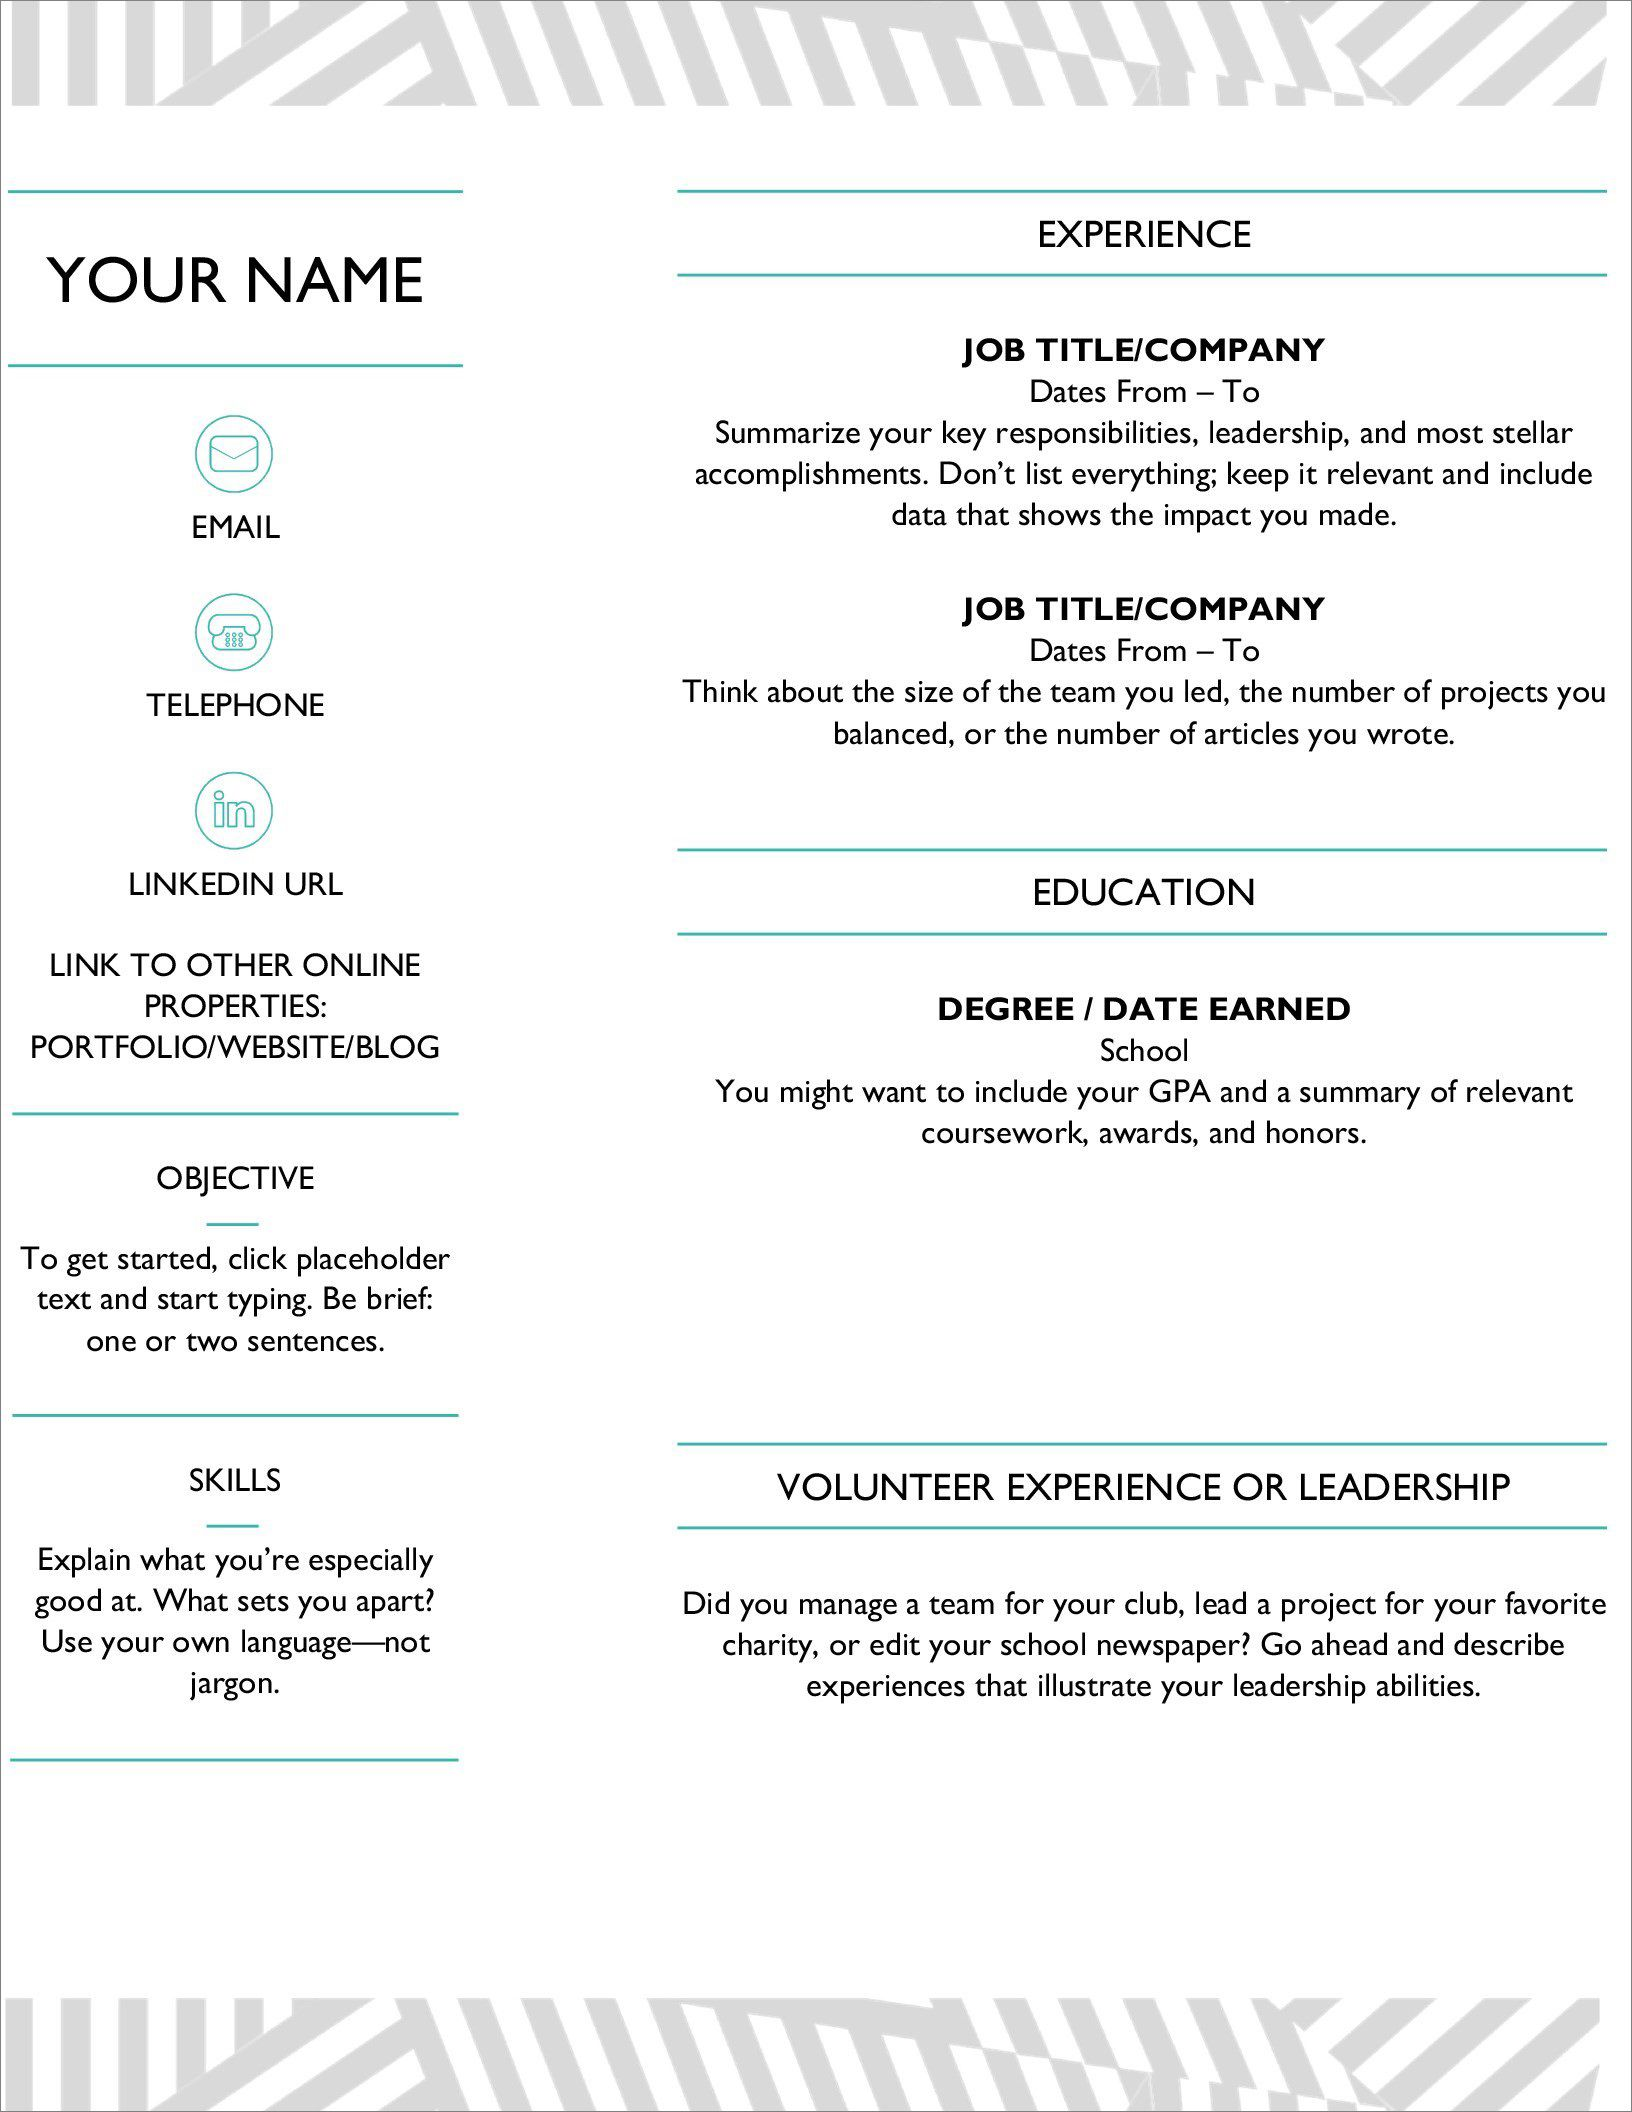 006 Fascinating Professional Resume Template Word High Resolution  Microsoft Download Free 2010 2019Full